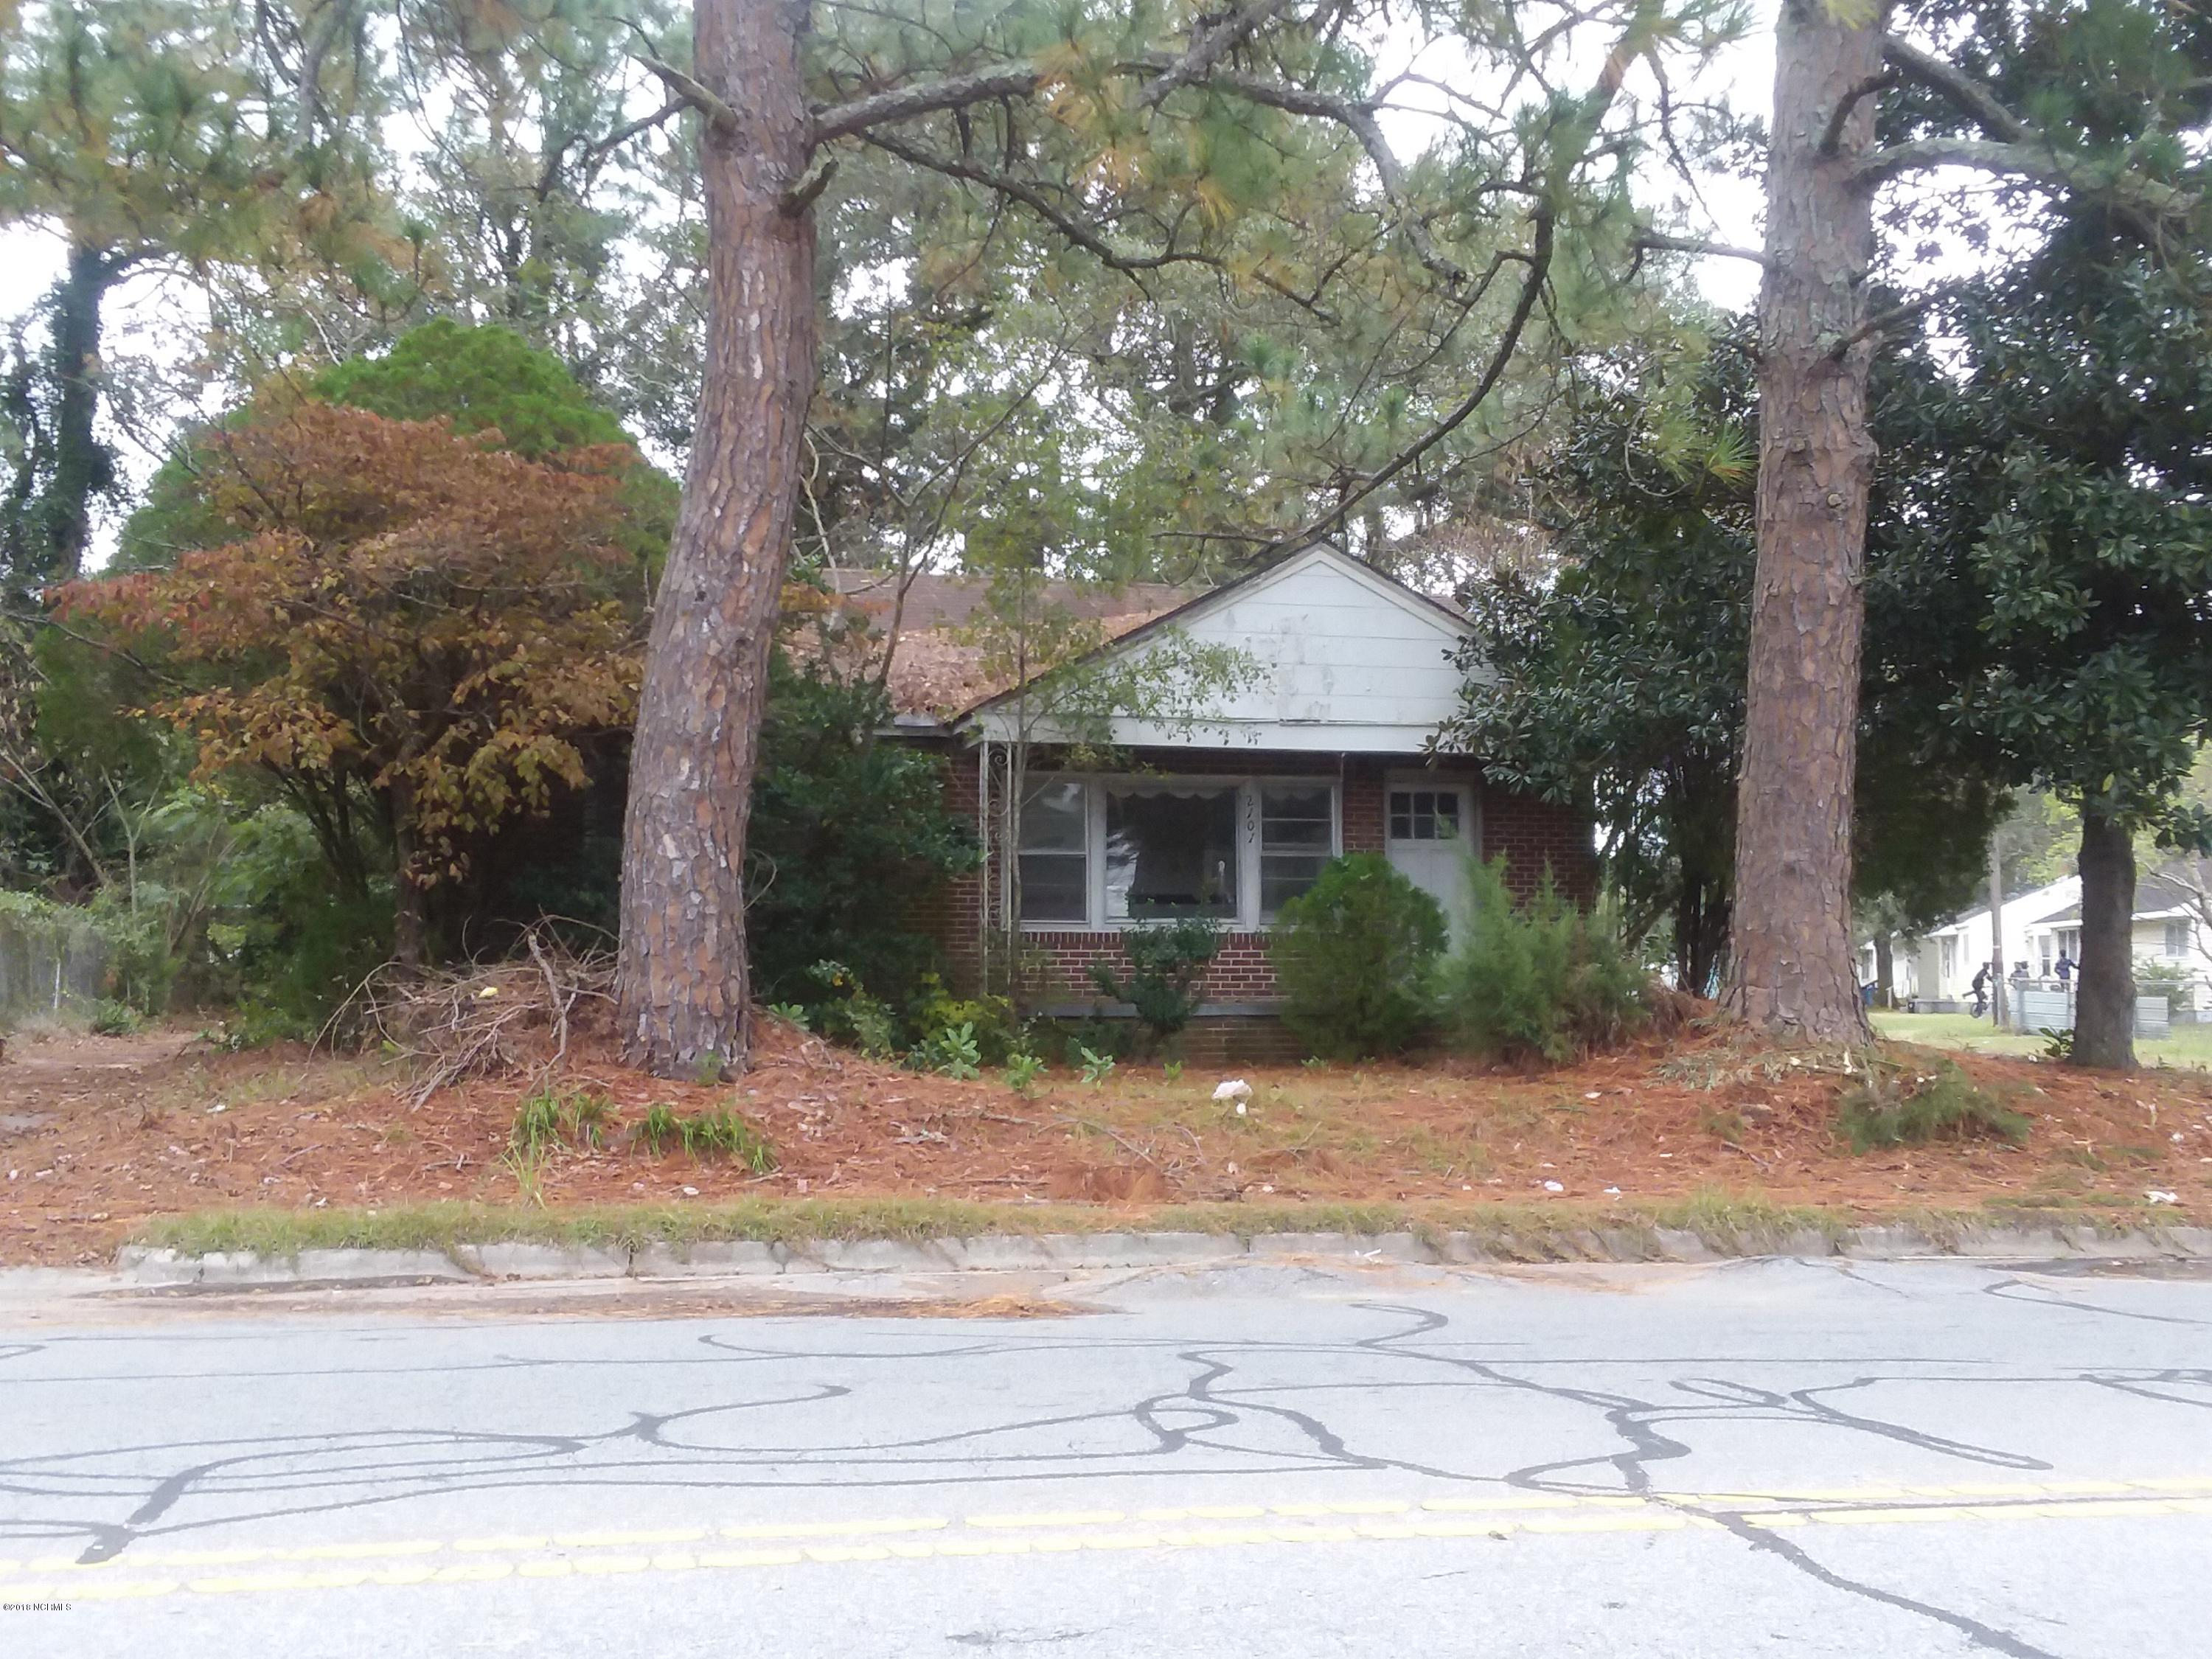 2101 Old Snow Hill Road, Kinston, North Carolina, 2 Bedrooms Bedrooms, 4 Rooms Rooms,1 BathroomBathrooms,Single family residence,For sale,Old Snow Hill,100139976